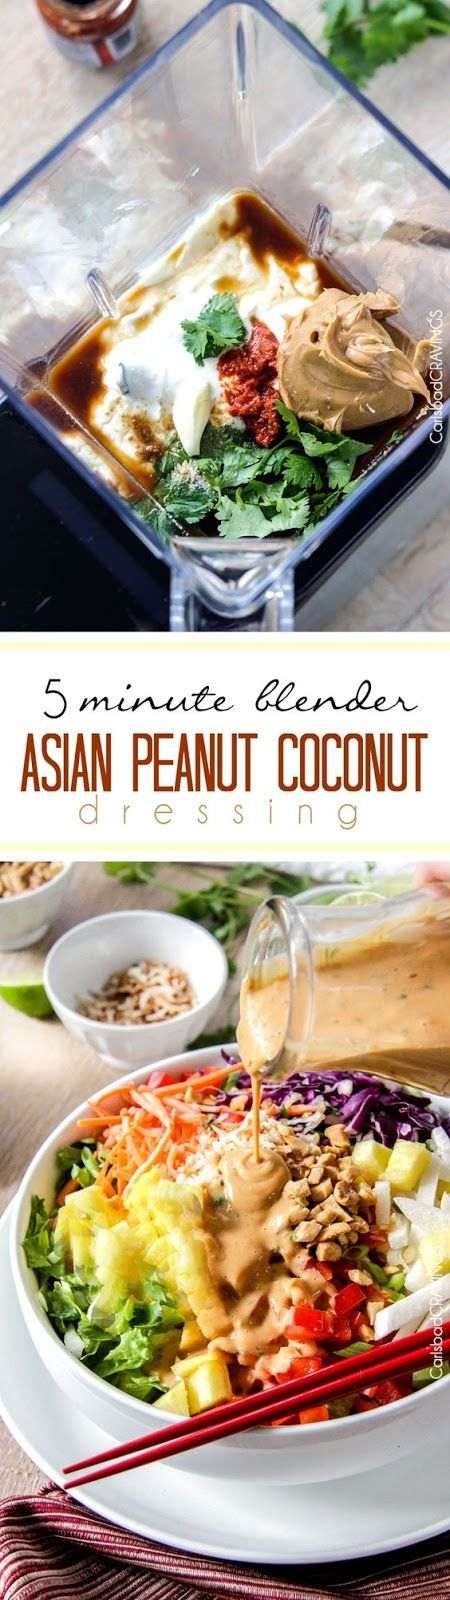 INGREDIENTS   1 5.3 oz. container Greek coconut yogurt (I use Chobani)   1/3 cup creamy peanut butter   1-2 tablespoons Asian sweet chi...